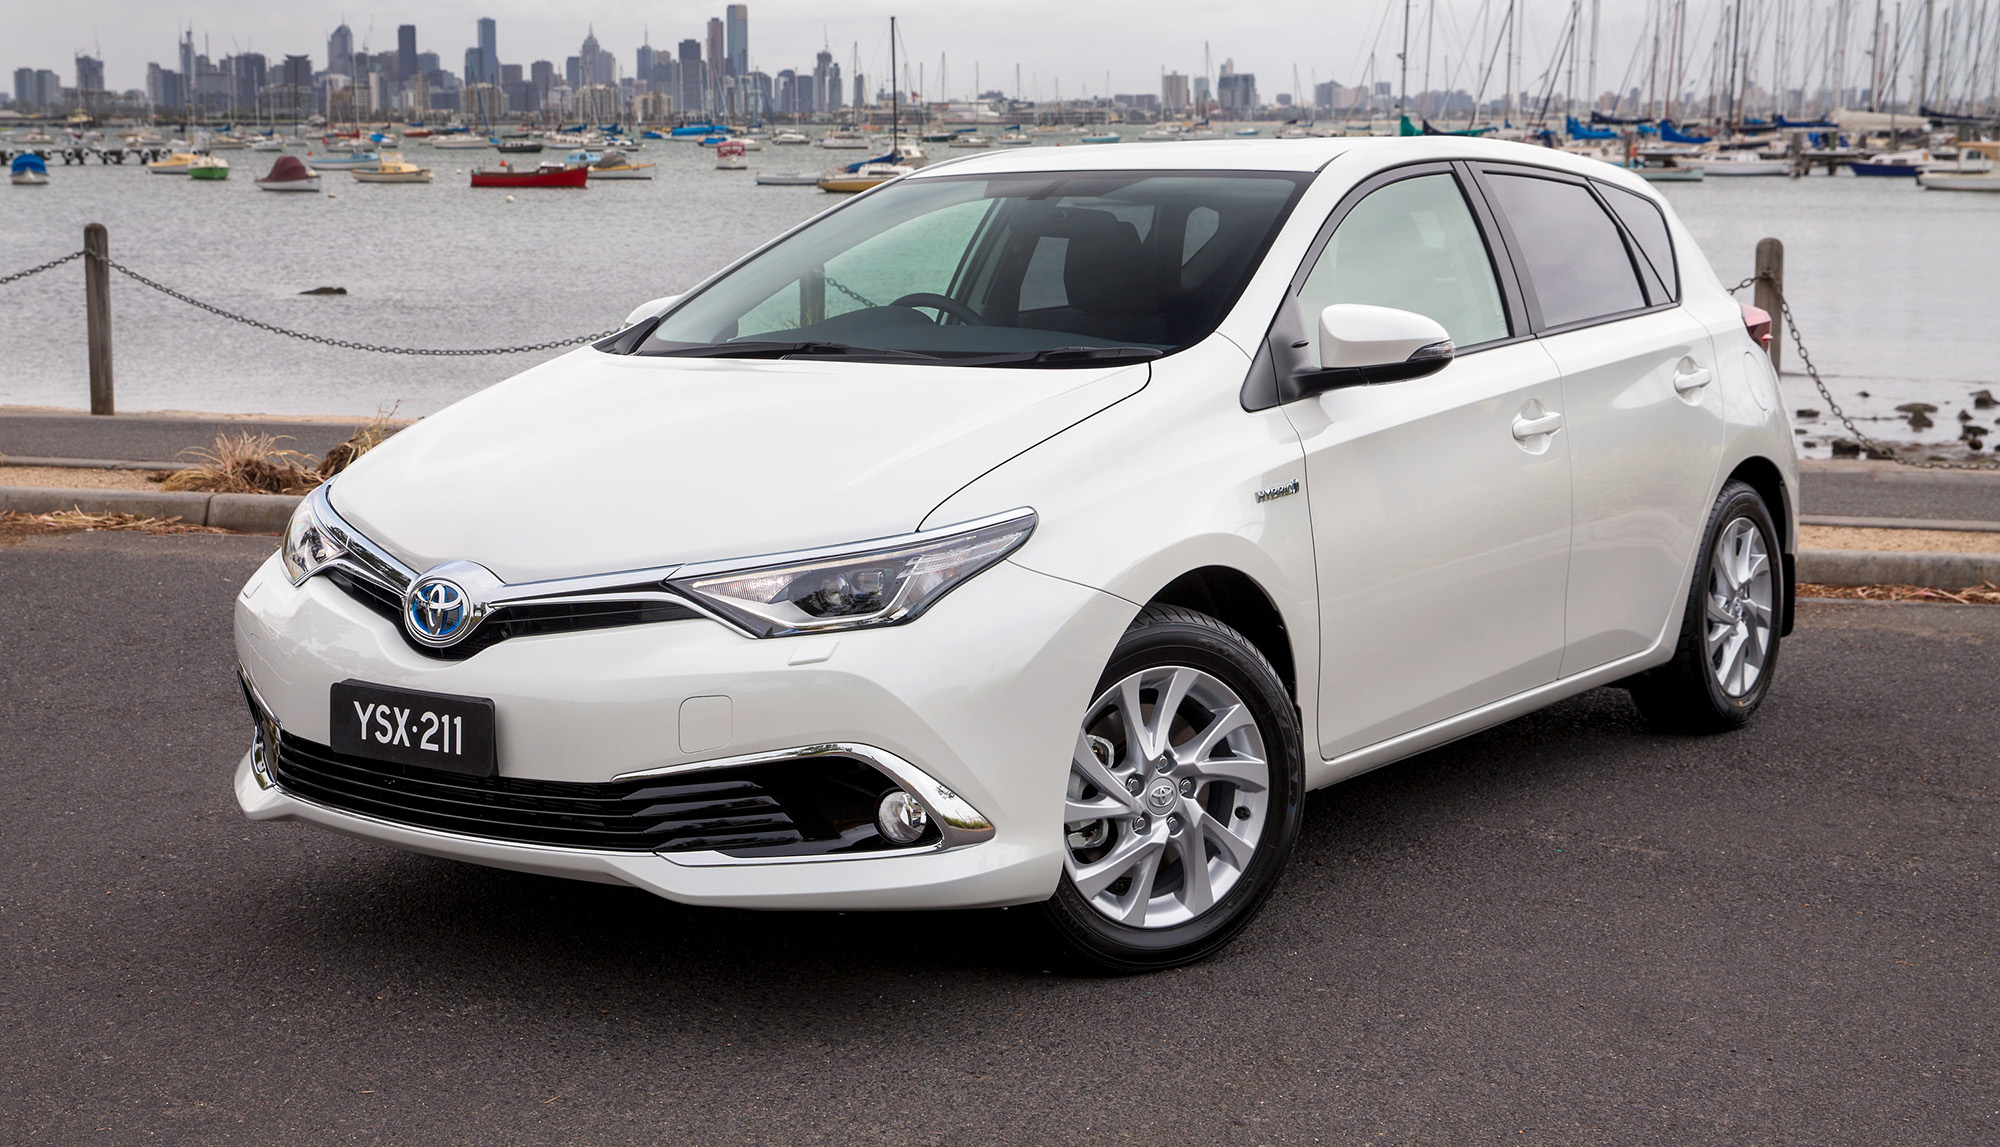 Toyota Auris Diesel 2016 >> Toyota Corolla Hybrid Hatch Coming to Australia in 2016 - autoevolution